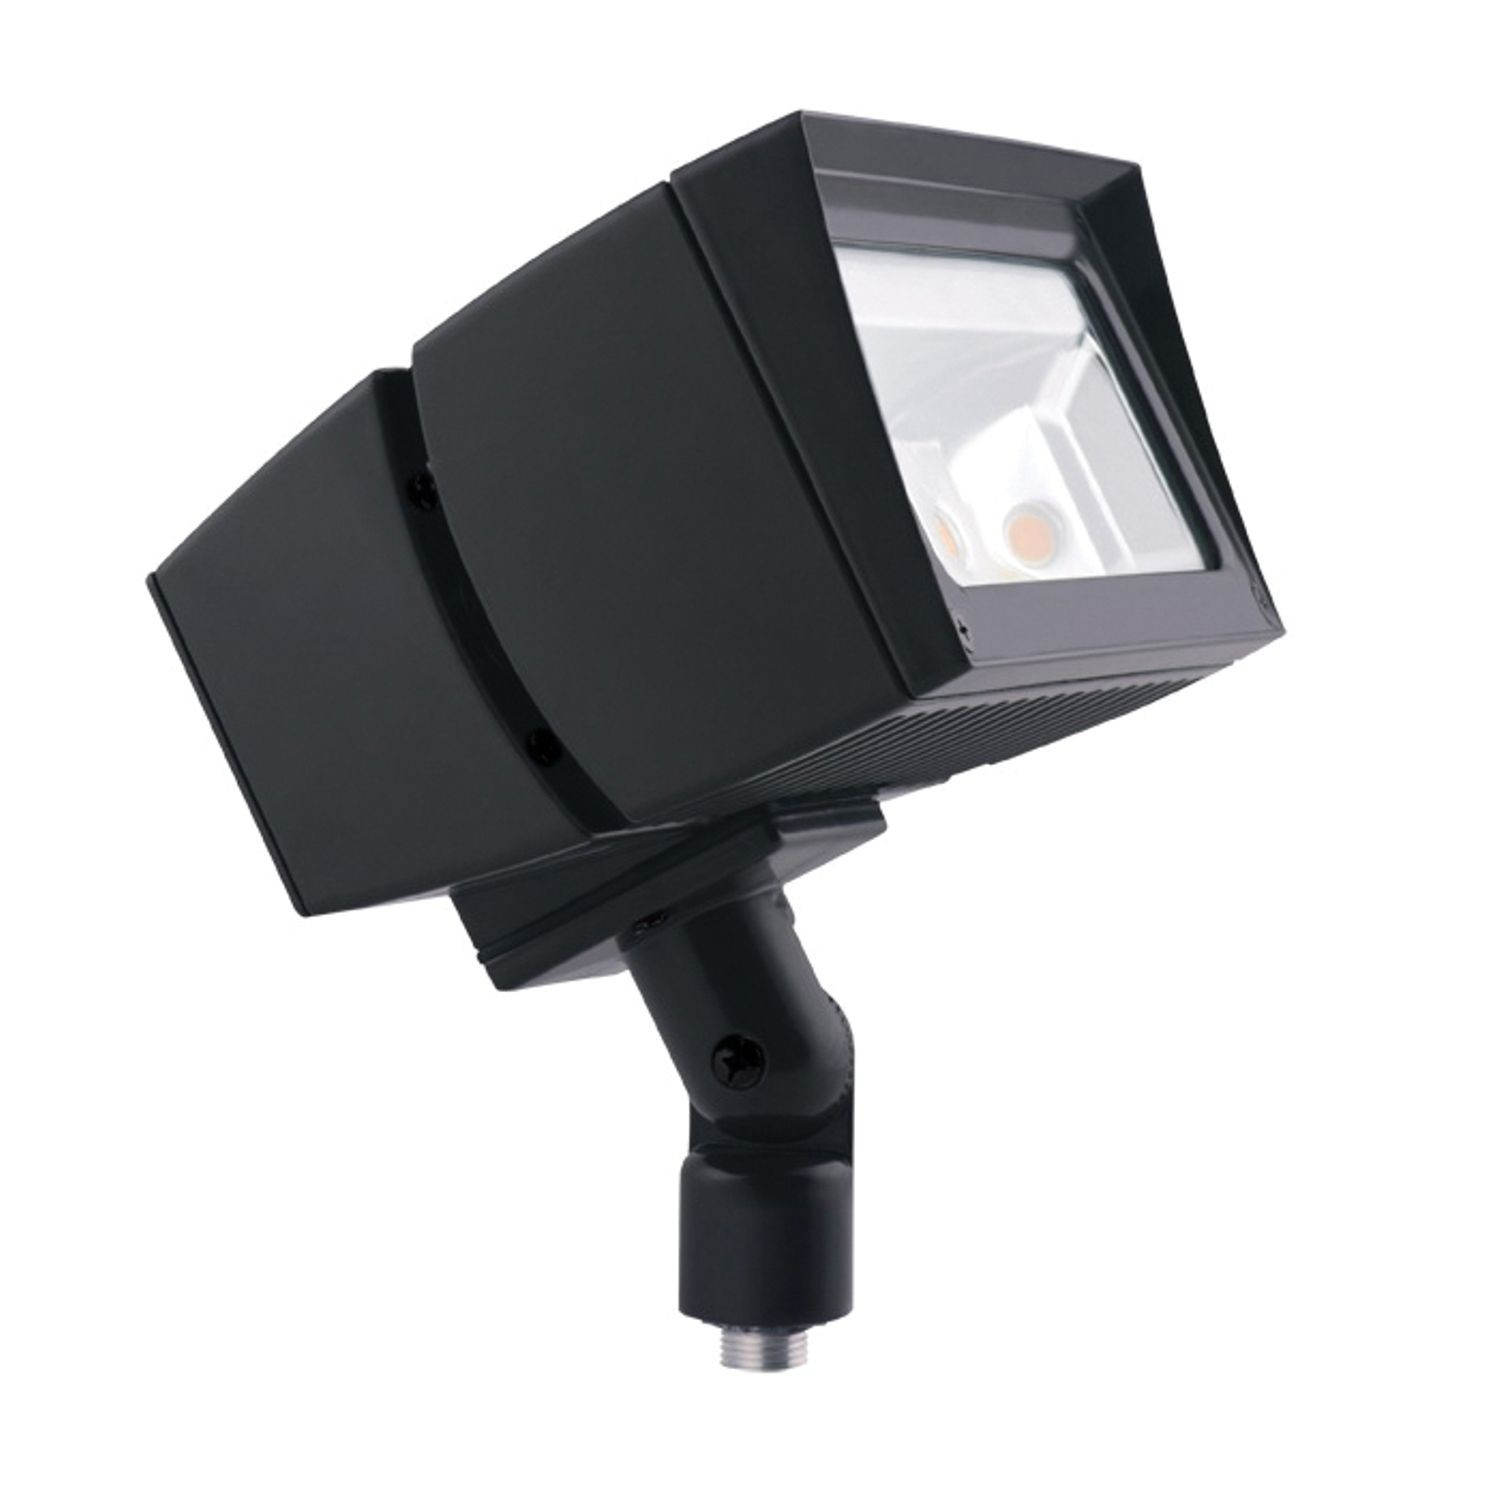 Rab Ffled80 Flood Light Without Photocell Led Lamp 89 W Fixture Wiring 277vac 120 208 240 277 Vac Bronze Housing